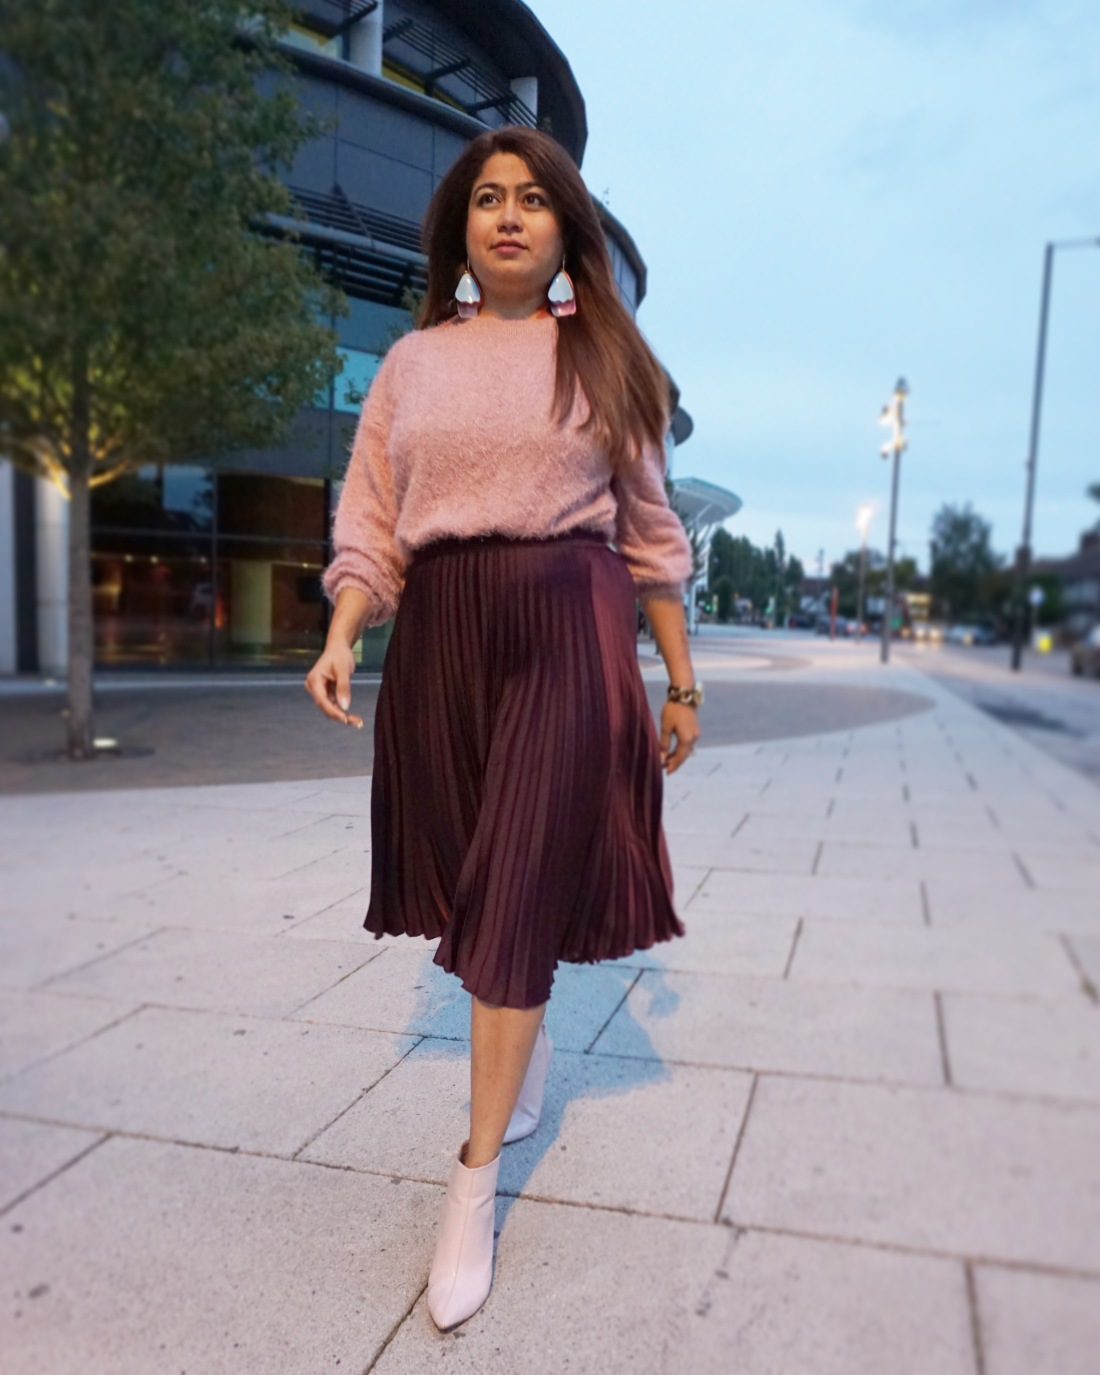 pleated skirt ,jumper and ankle length boots - autumn style